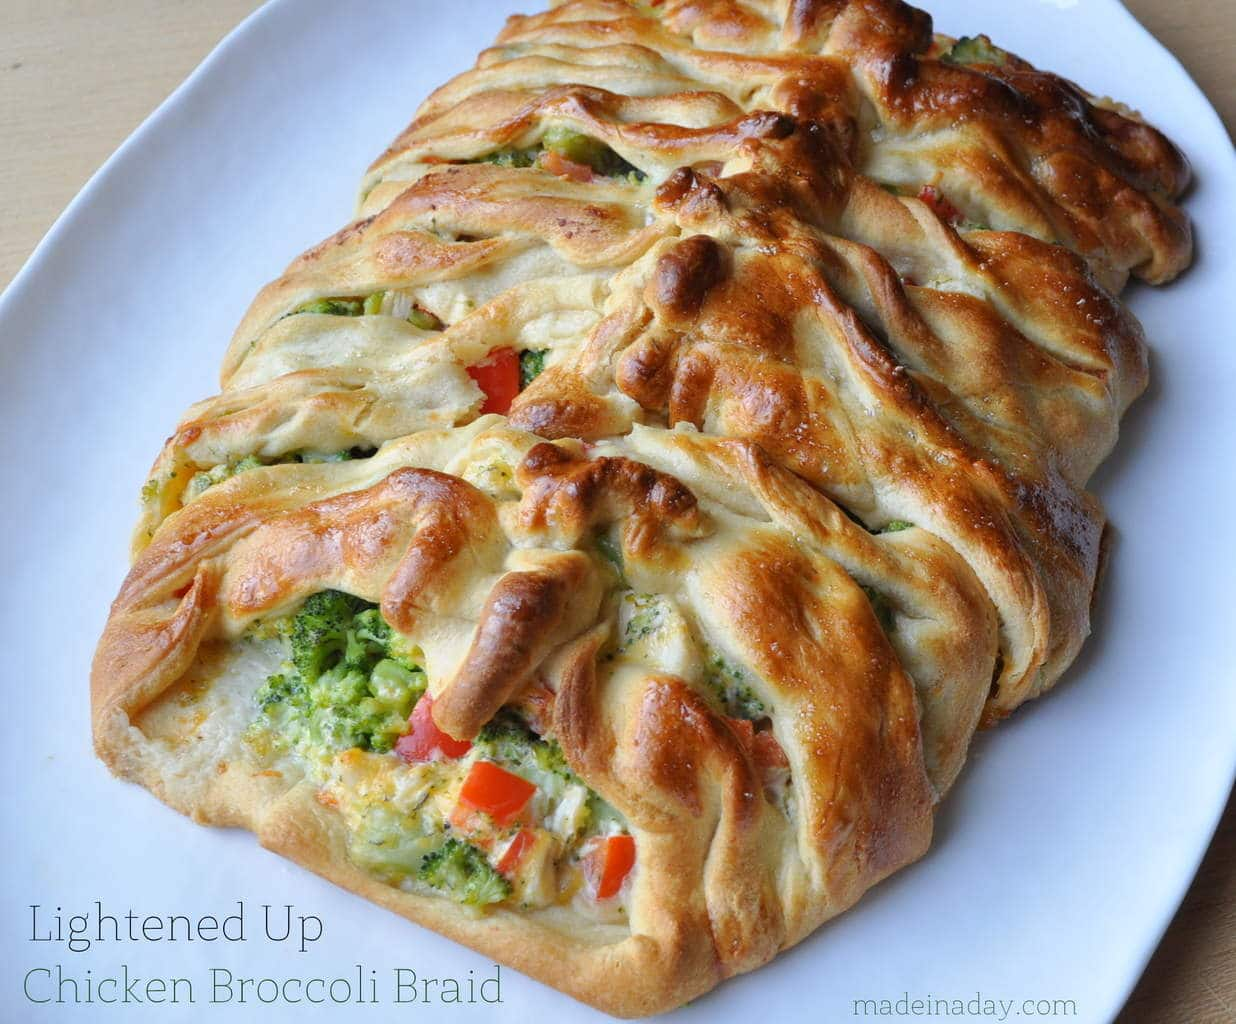 Light Chicken Broccoli Braid madeinaday.com